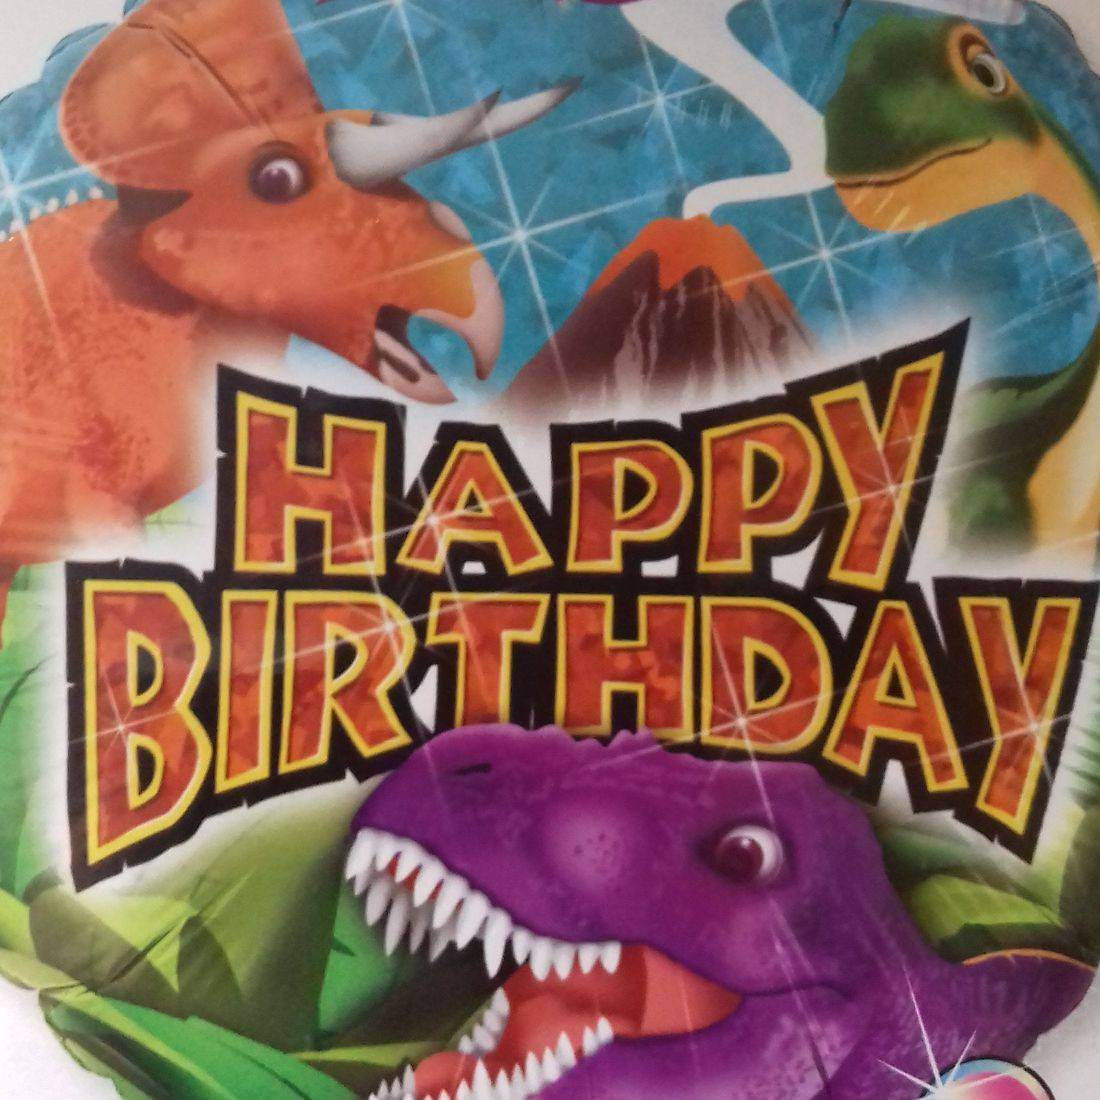 HAPPY BIRTHDAY - dinosaurs